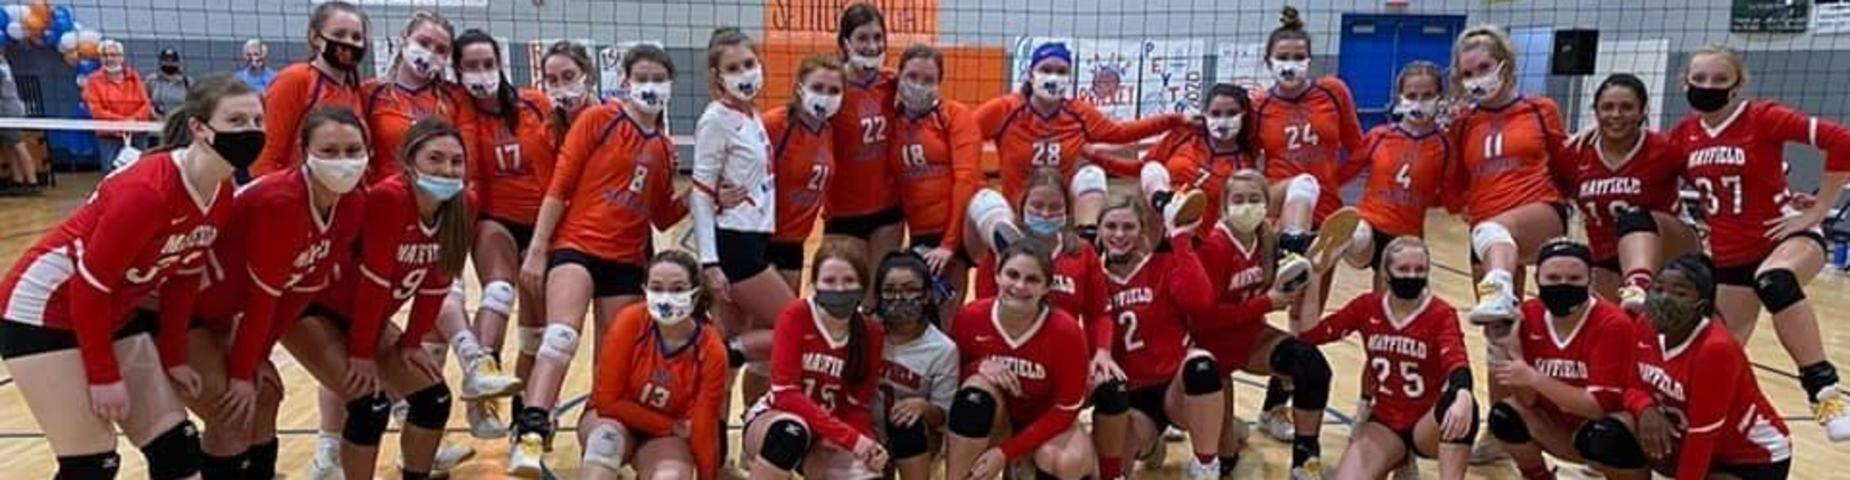 Lady Cards and Marshall County laced up with gold laces for Pediatric Cancer awareness and masked up to take the picture. #LadyCardinals #PrideandTradition